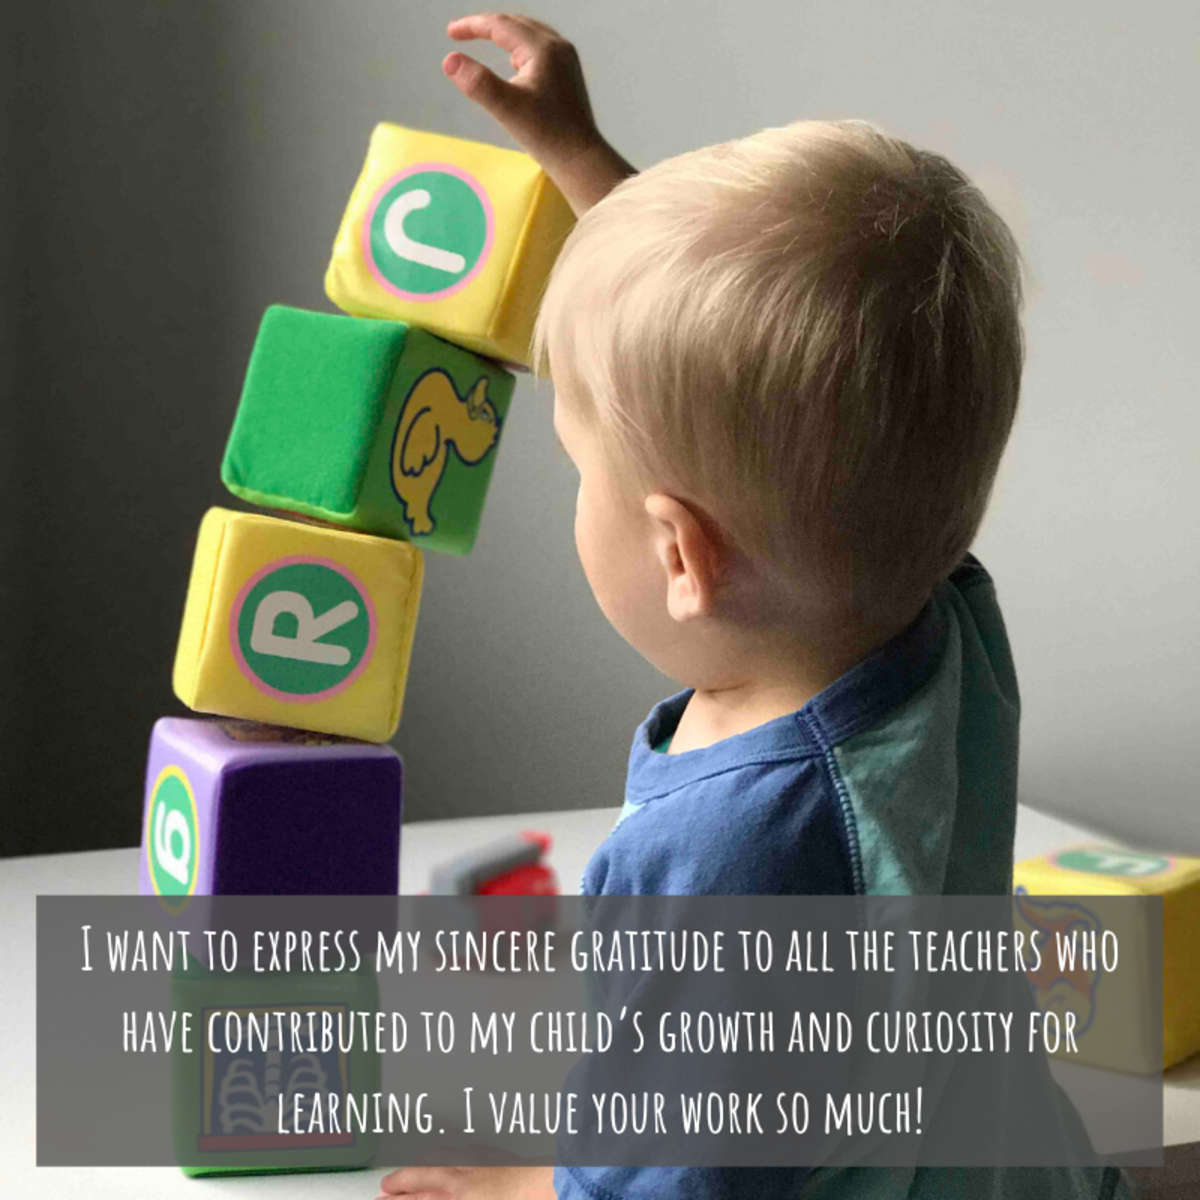 Preschool and kindergarten teachers work so hard. Let them know how much you appreciate the care they provide for your child.